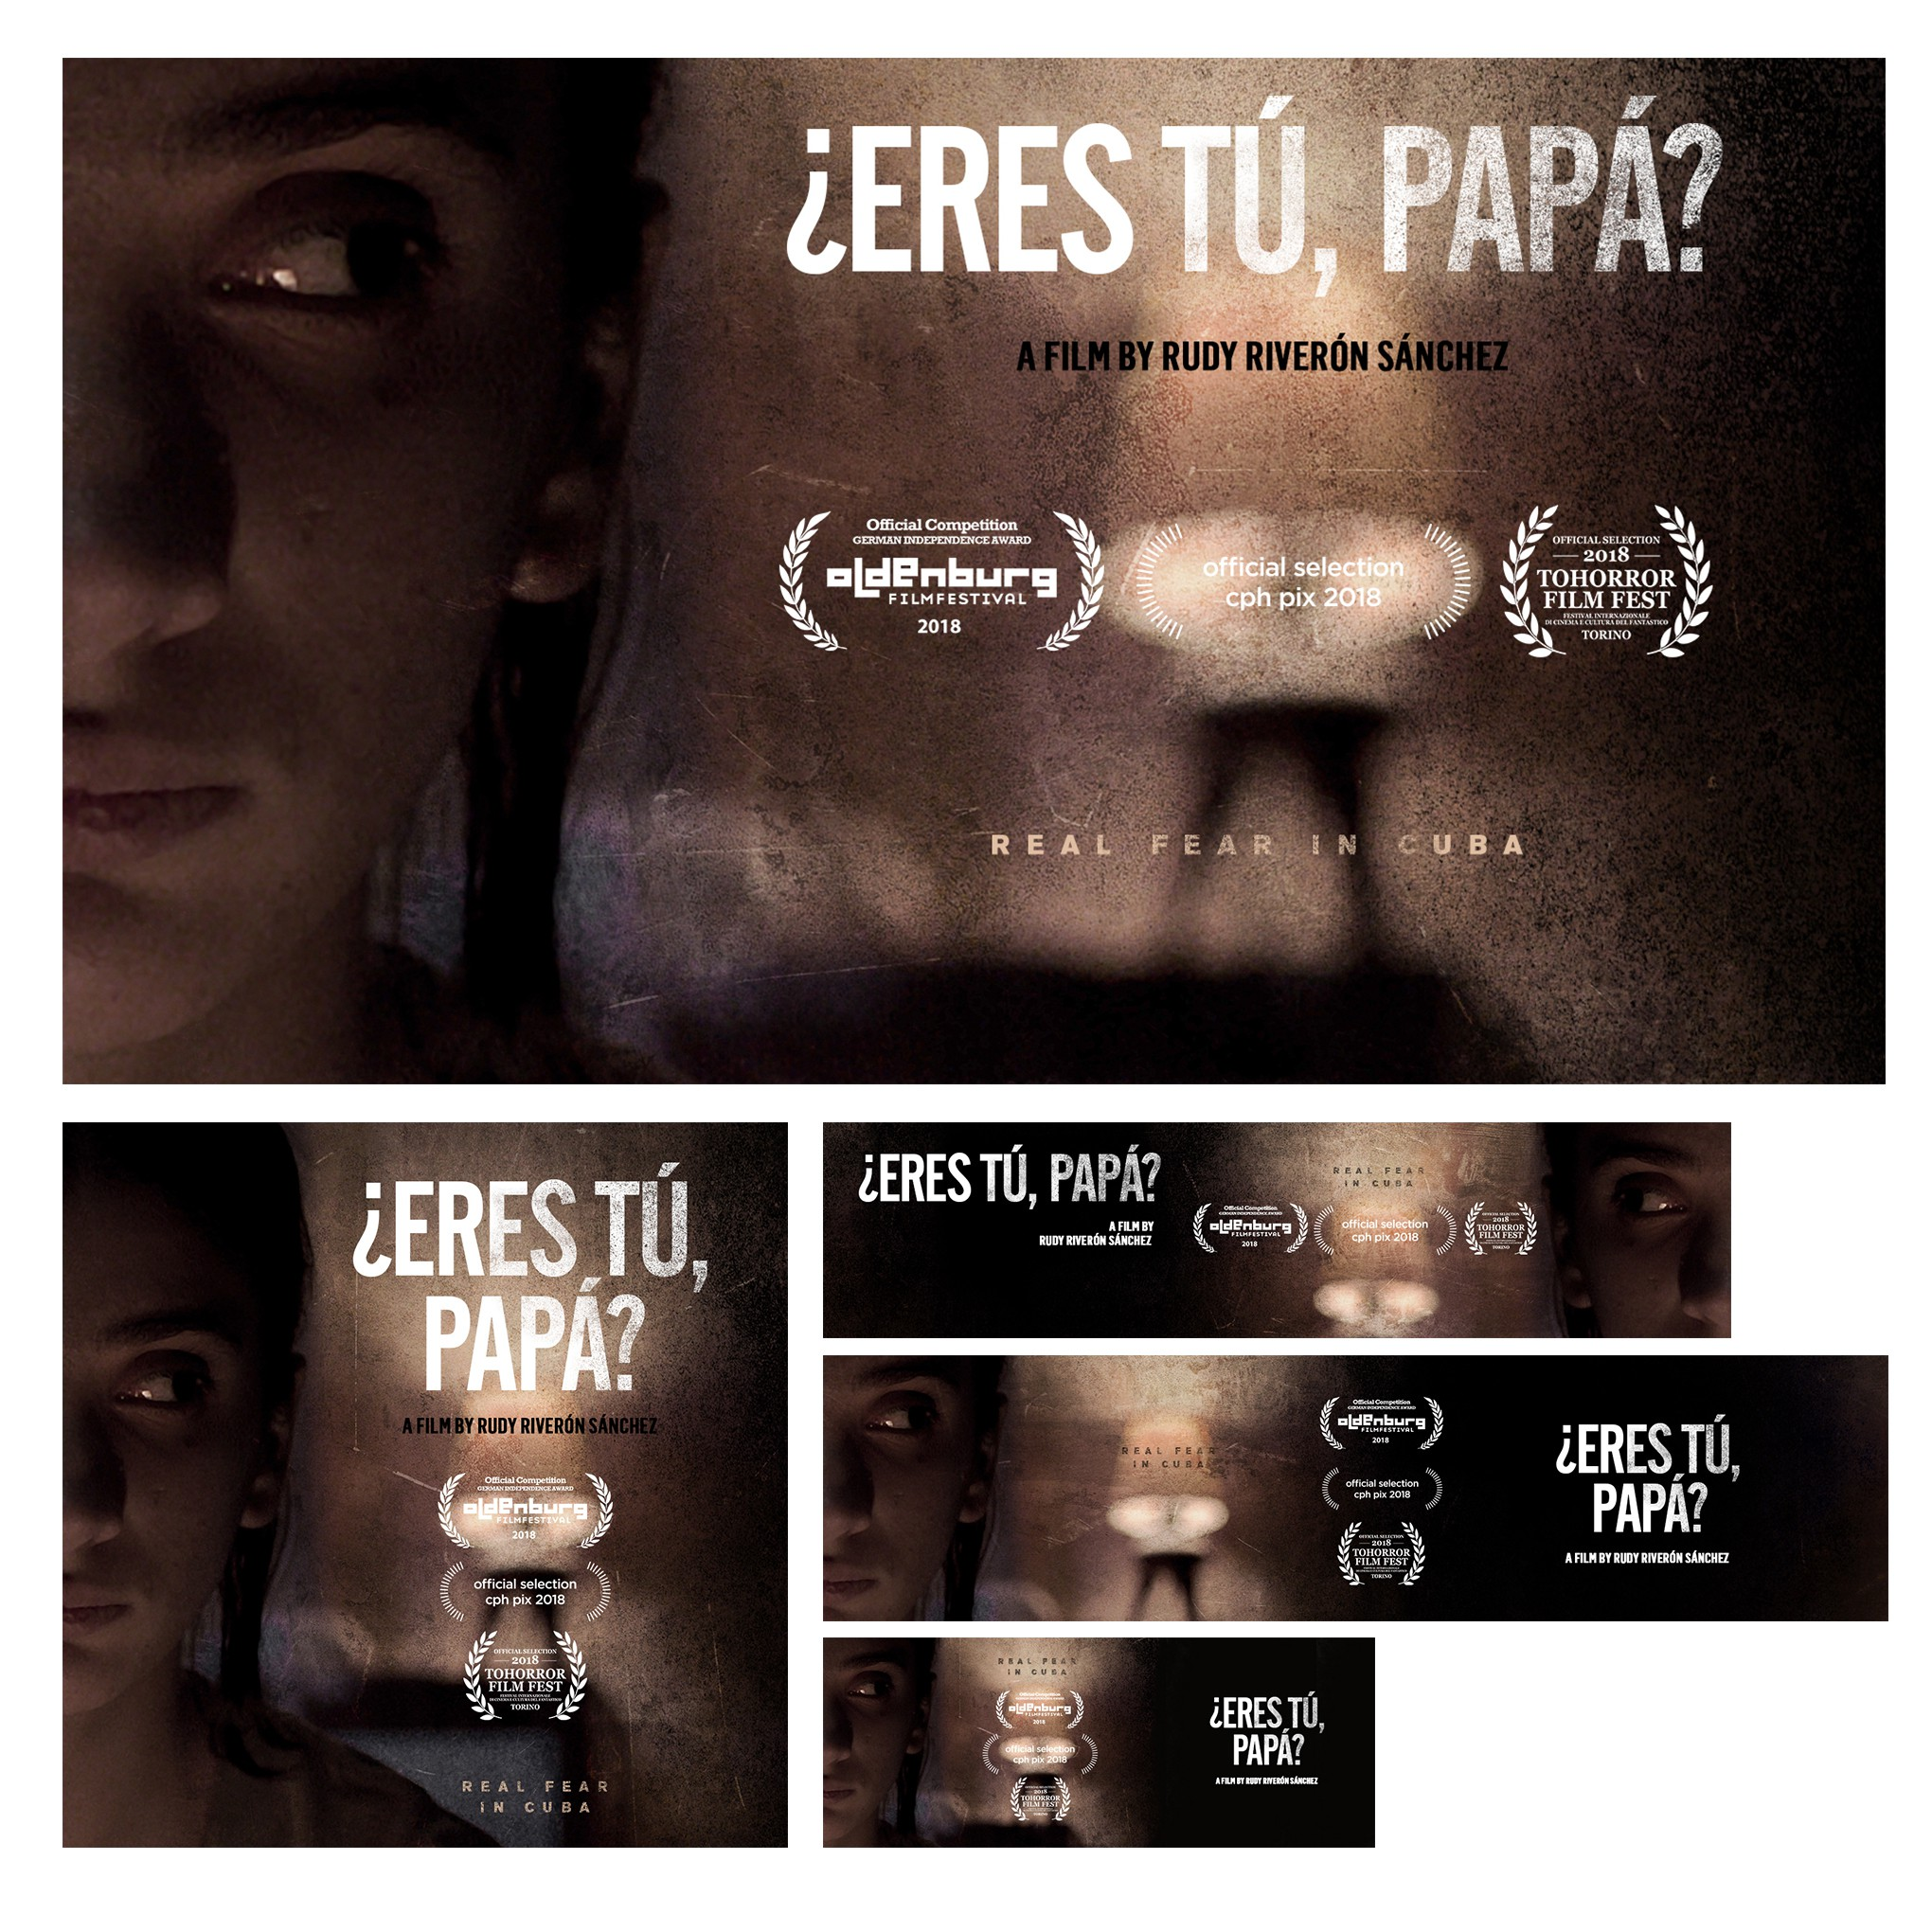 Eres Tu Papa? - Poster versions and Online presence versions